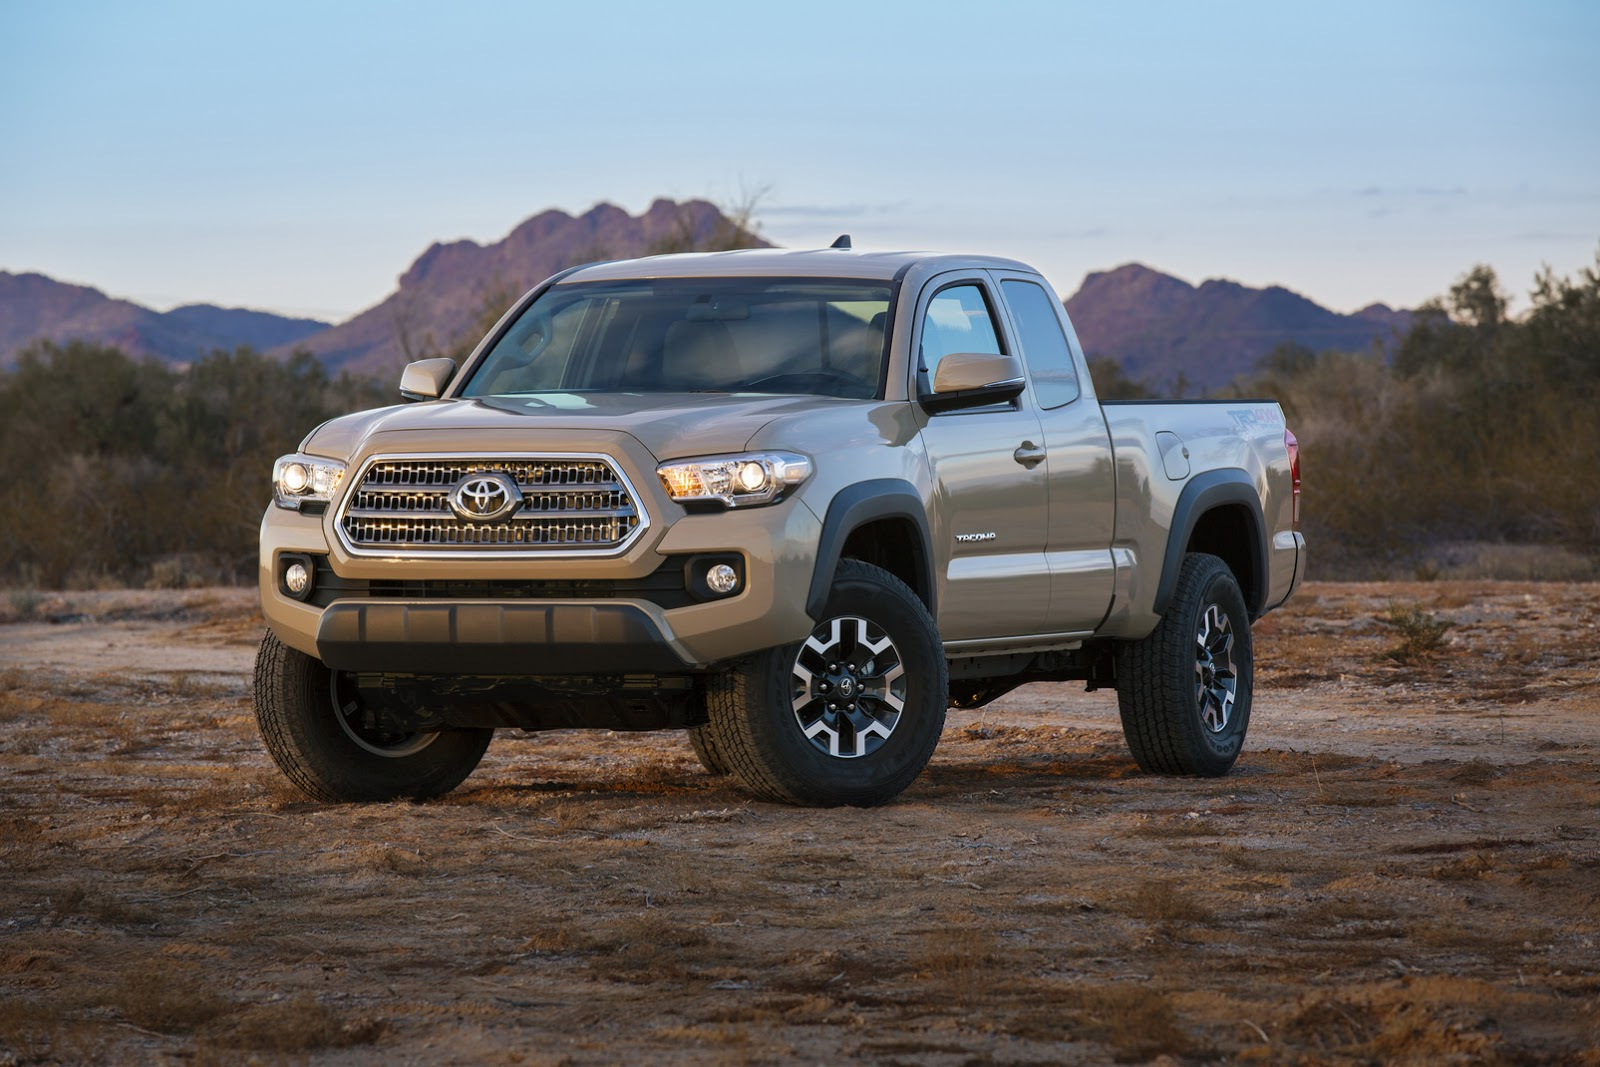 toyota details new 2016 tacoma pickup truck 75 pics video. Black Bedroom Furniture Sets. Home Design Ideas